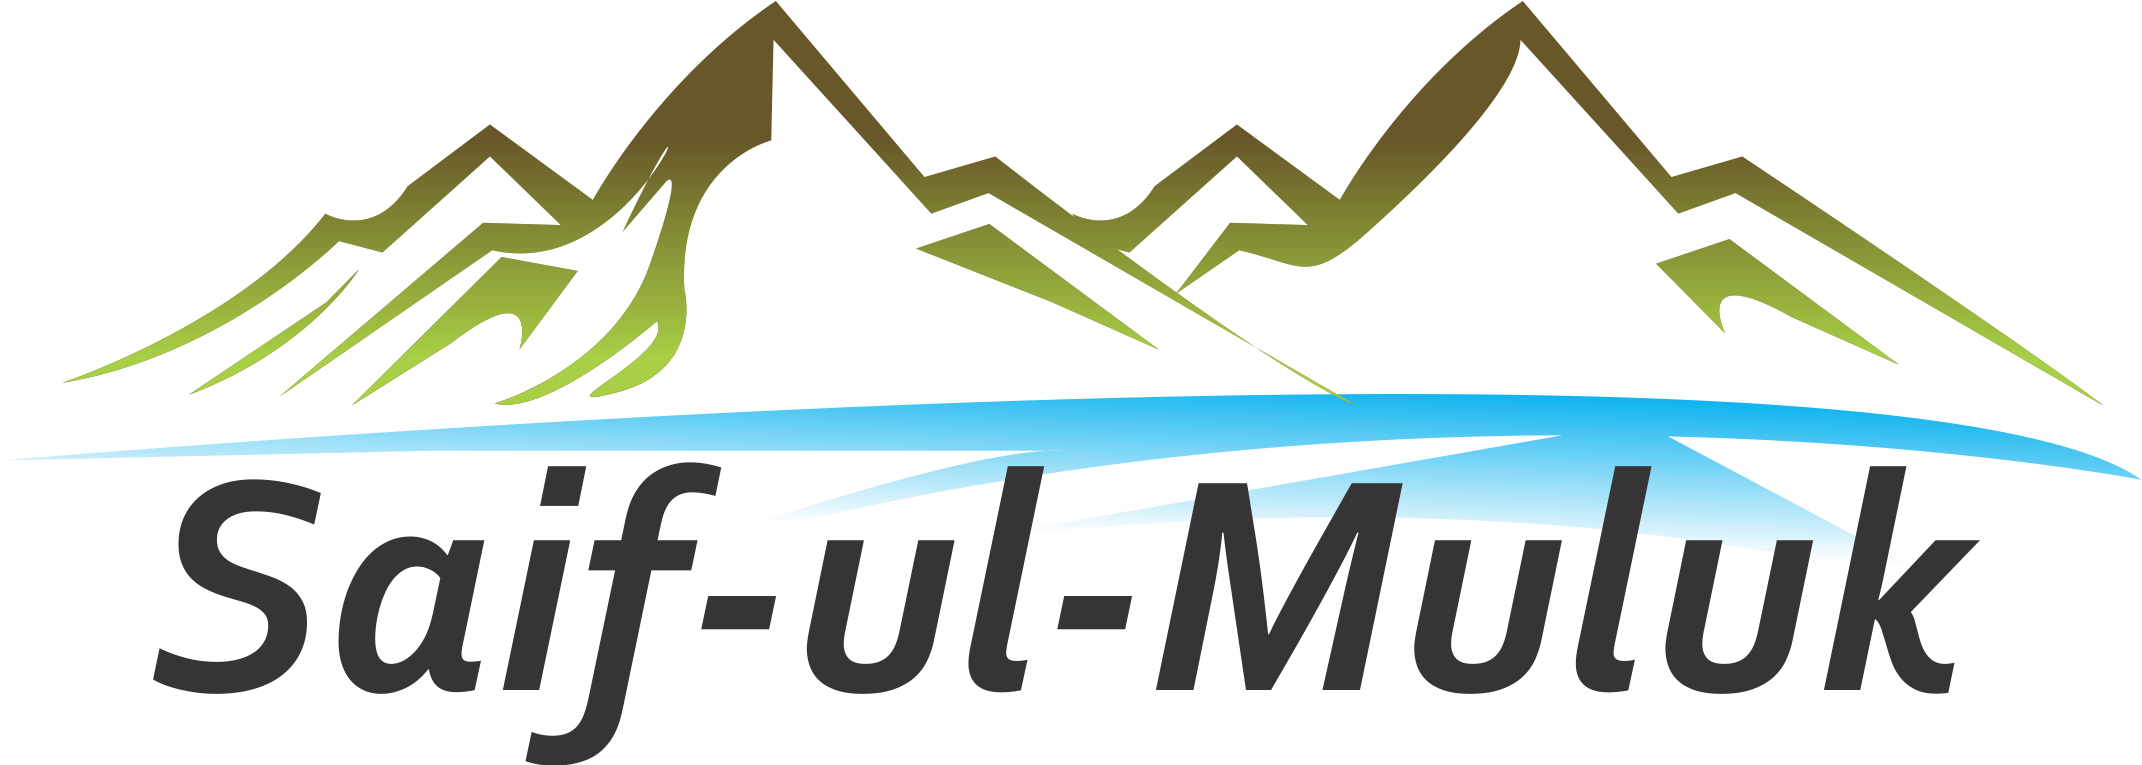 SaifulMuluk Tour and Travel Company | Saif-Ul-Muluk | Neelum valley Archives - SaifulMuluk Tour and Travel Company | Saif-Ul-Muluk